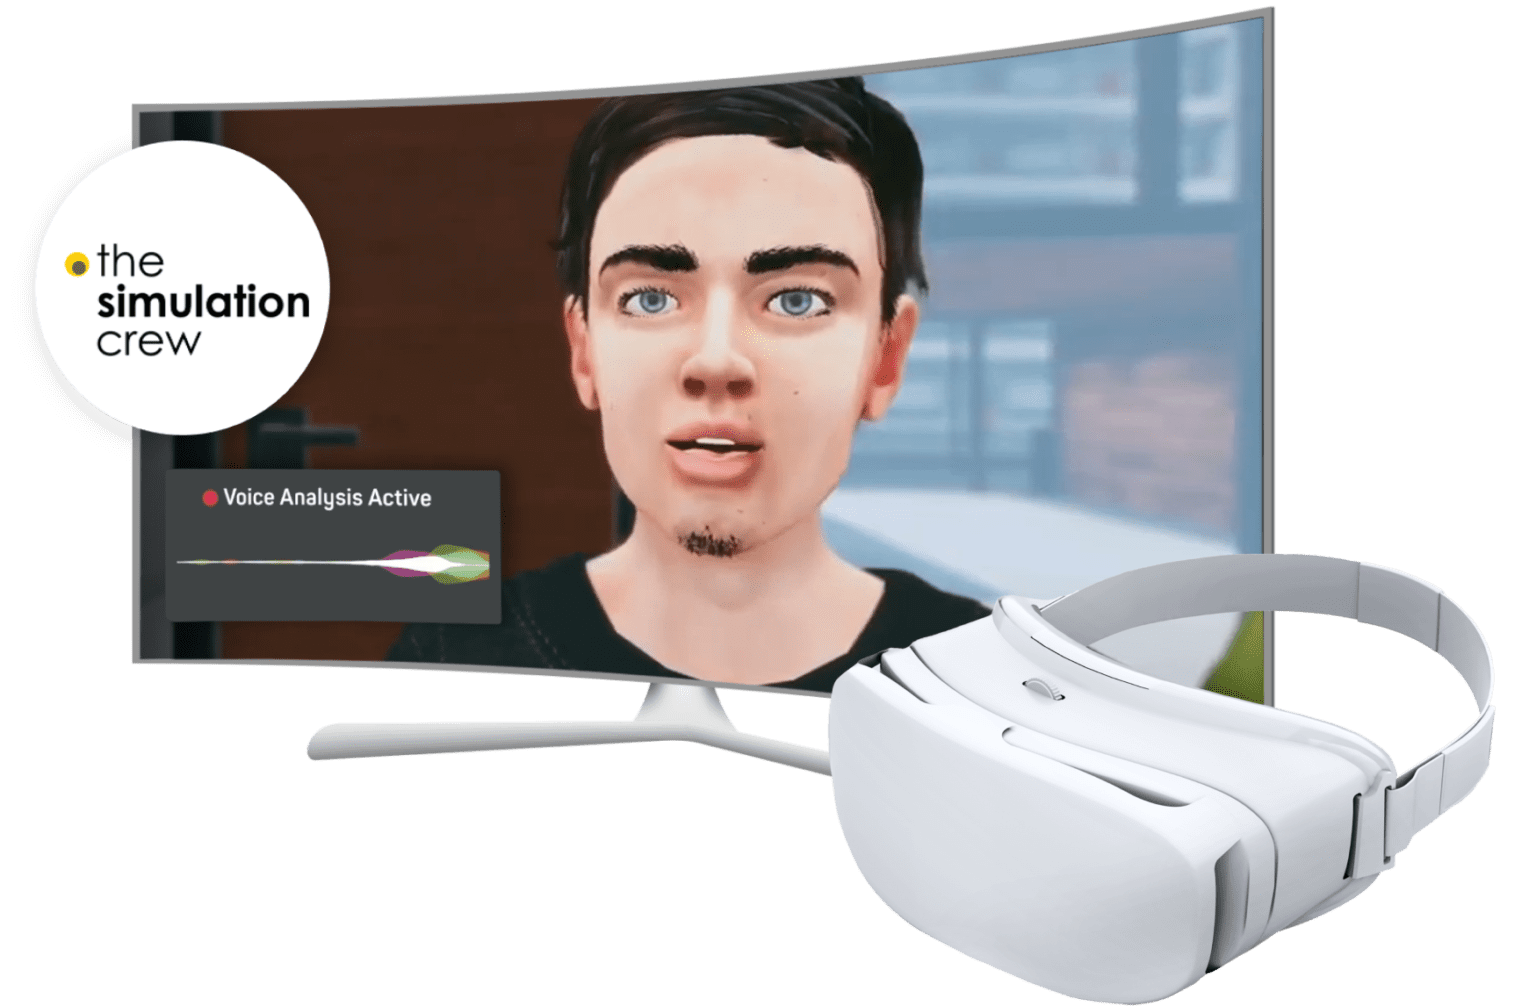 Emotional Interaction with Virtual Characters